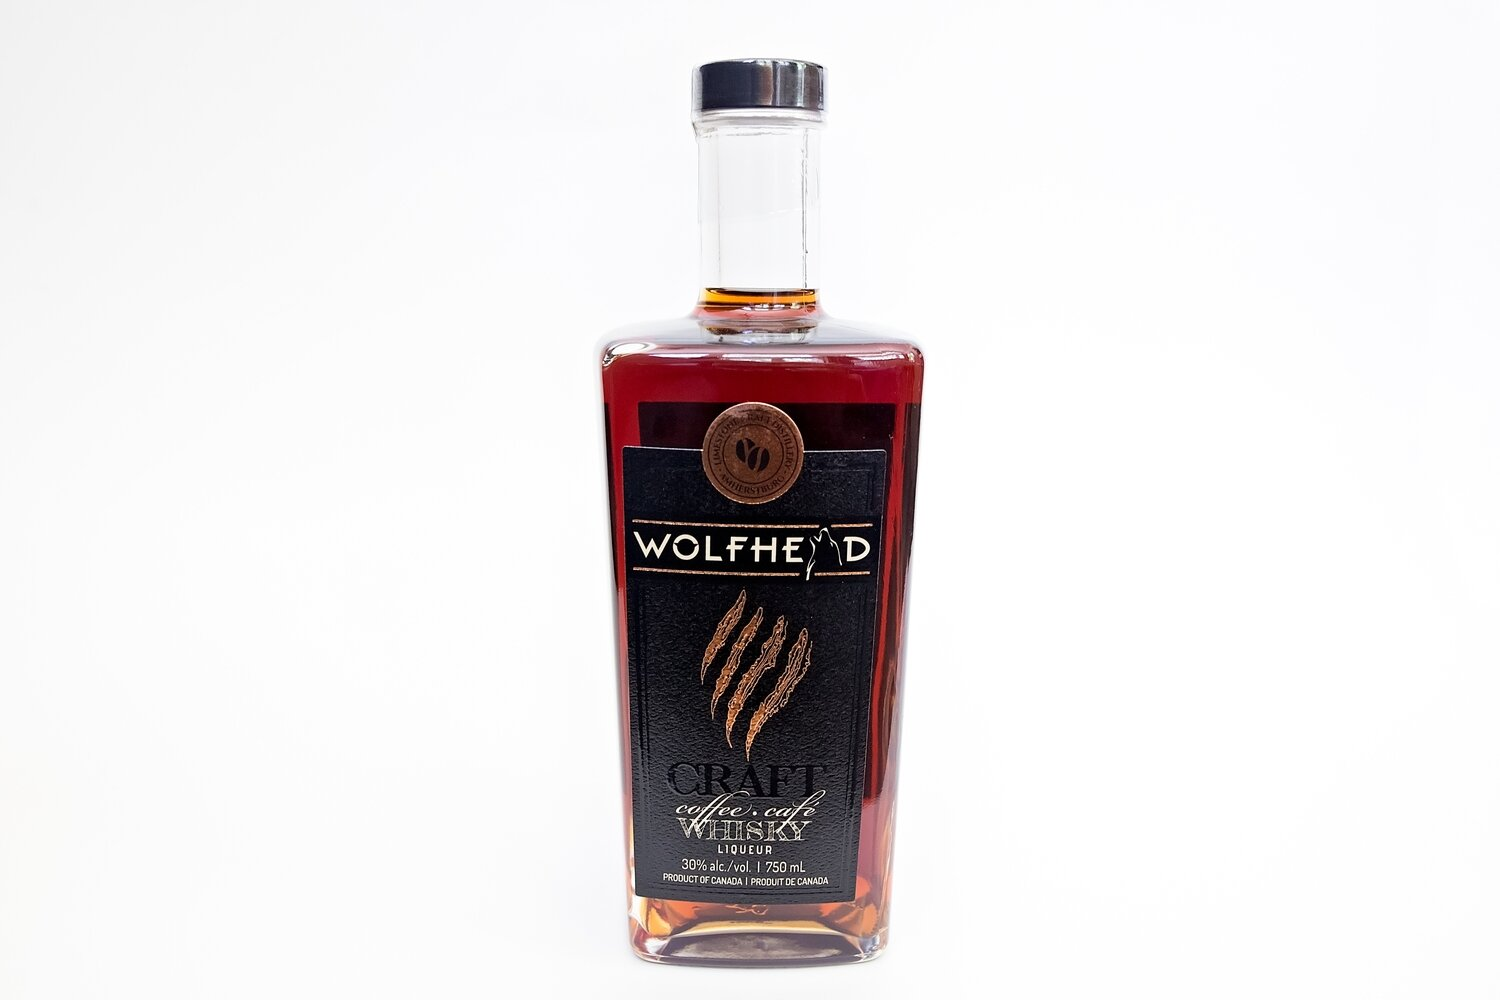 Wolfhead - Coffee Whisky 750ml